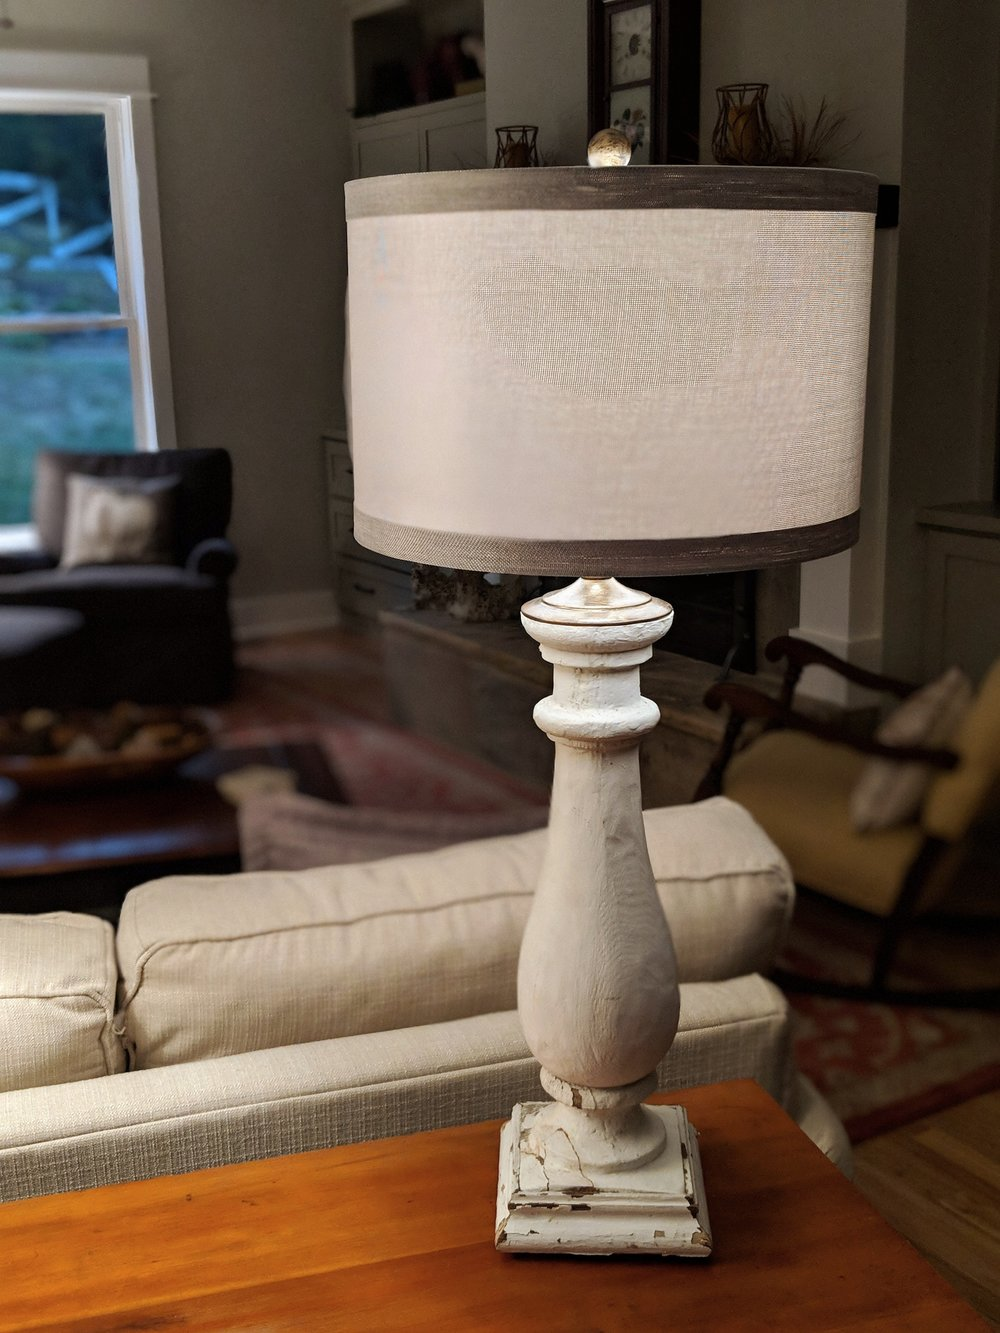 Architectural salvage custom made lamps by White Station Archetectual Salvage